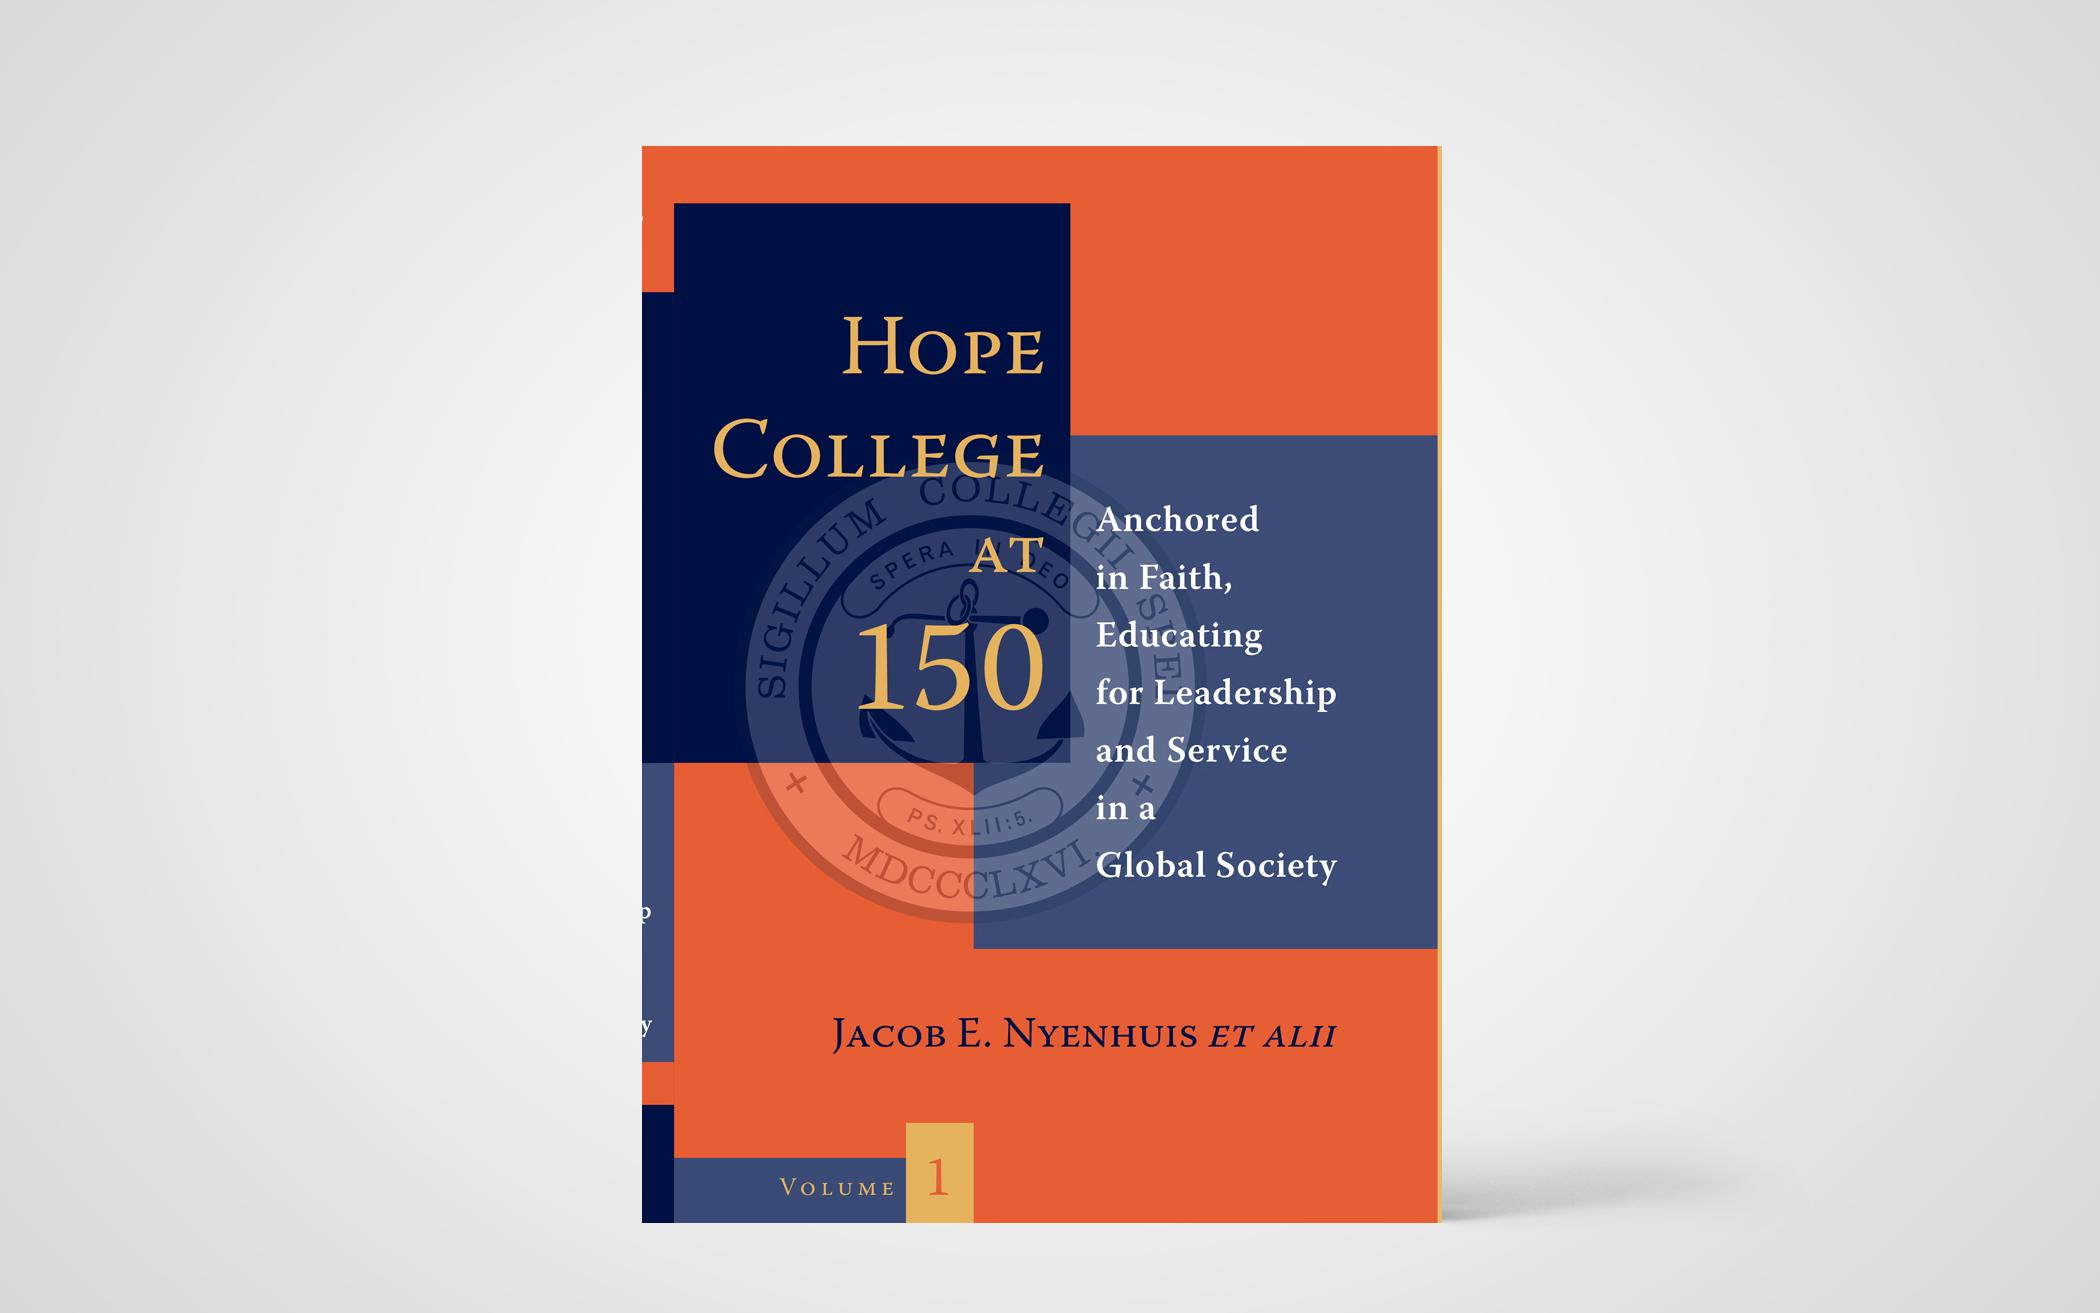 Hope College at 150: Anchored in Faith, Educating for Leadership and Service in a Global Society, 2 Volumes